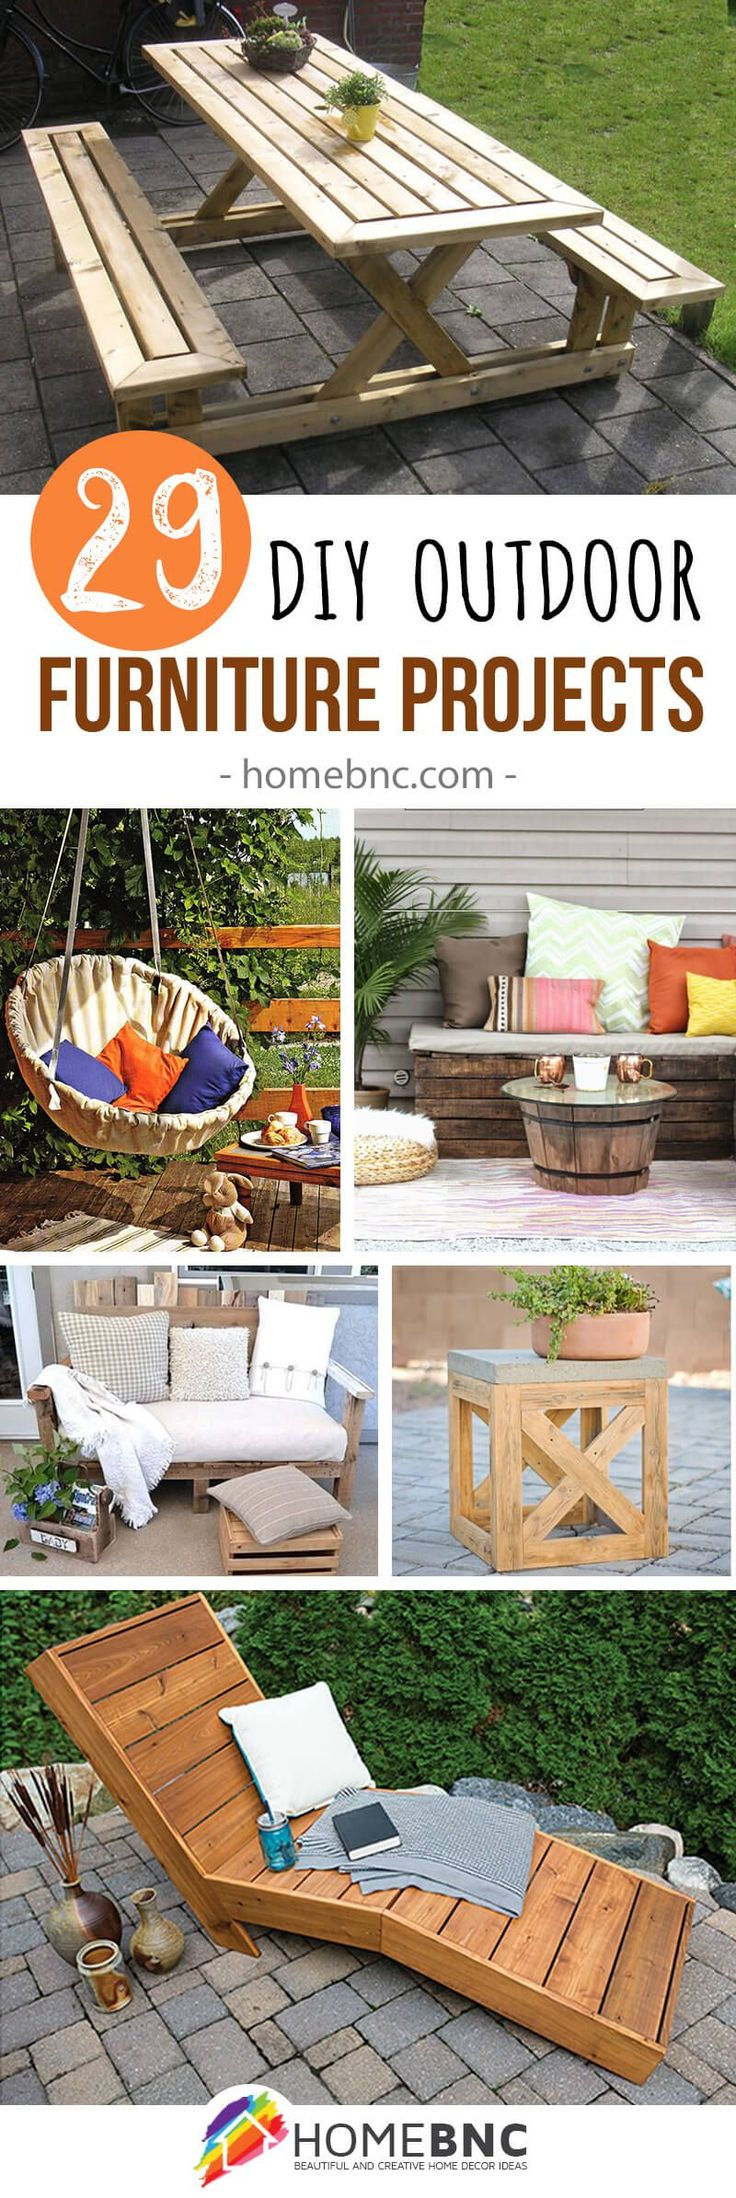 Homemade outdoor furniture ideas - 29 Diy Outdoor Furniture Projects To Beautify Your Outdoor Space